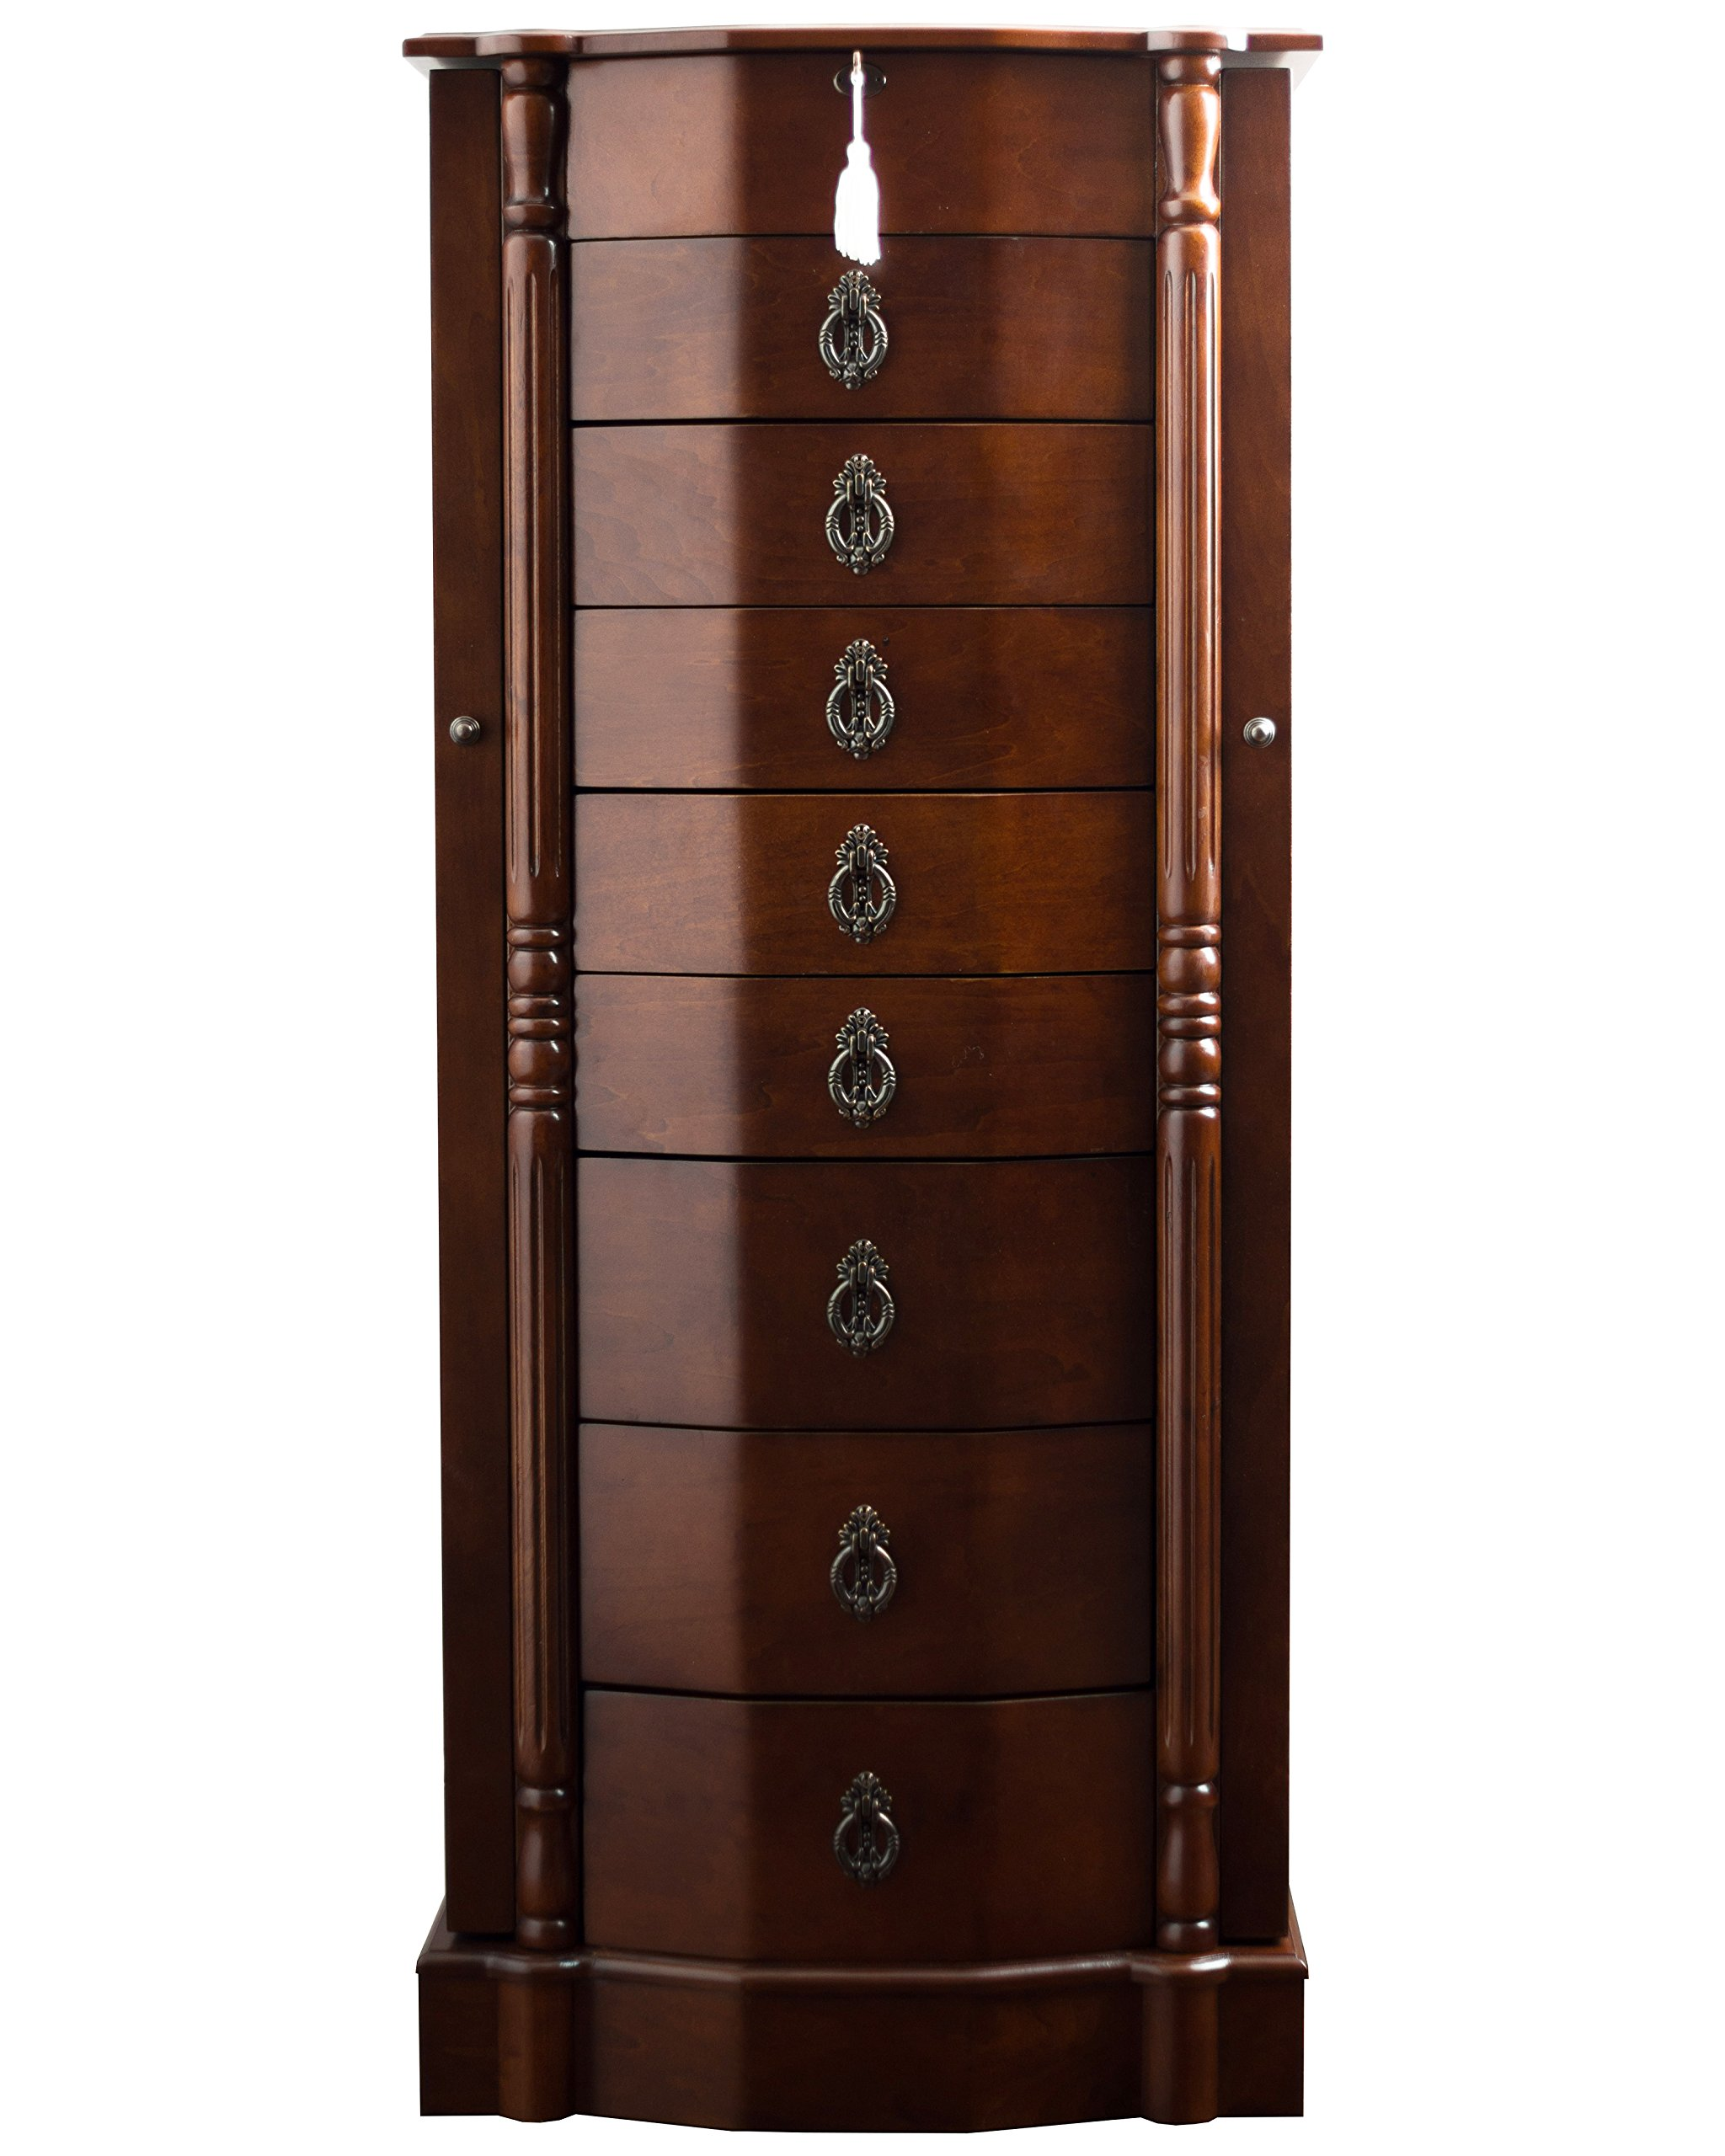 Hives and Honey 1004-382 Robyn Jewelry Armoire, 41'' H x 17.25'' W x 12.5'' D, Walnut by Hives and Honey (Image #1)